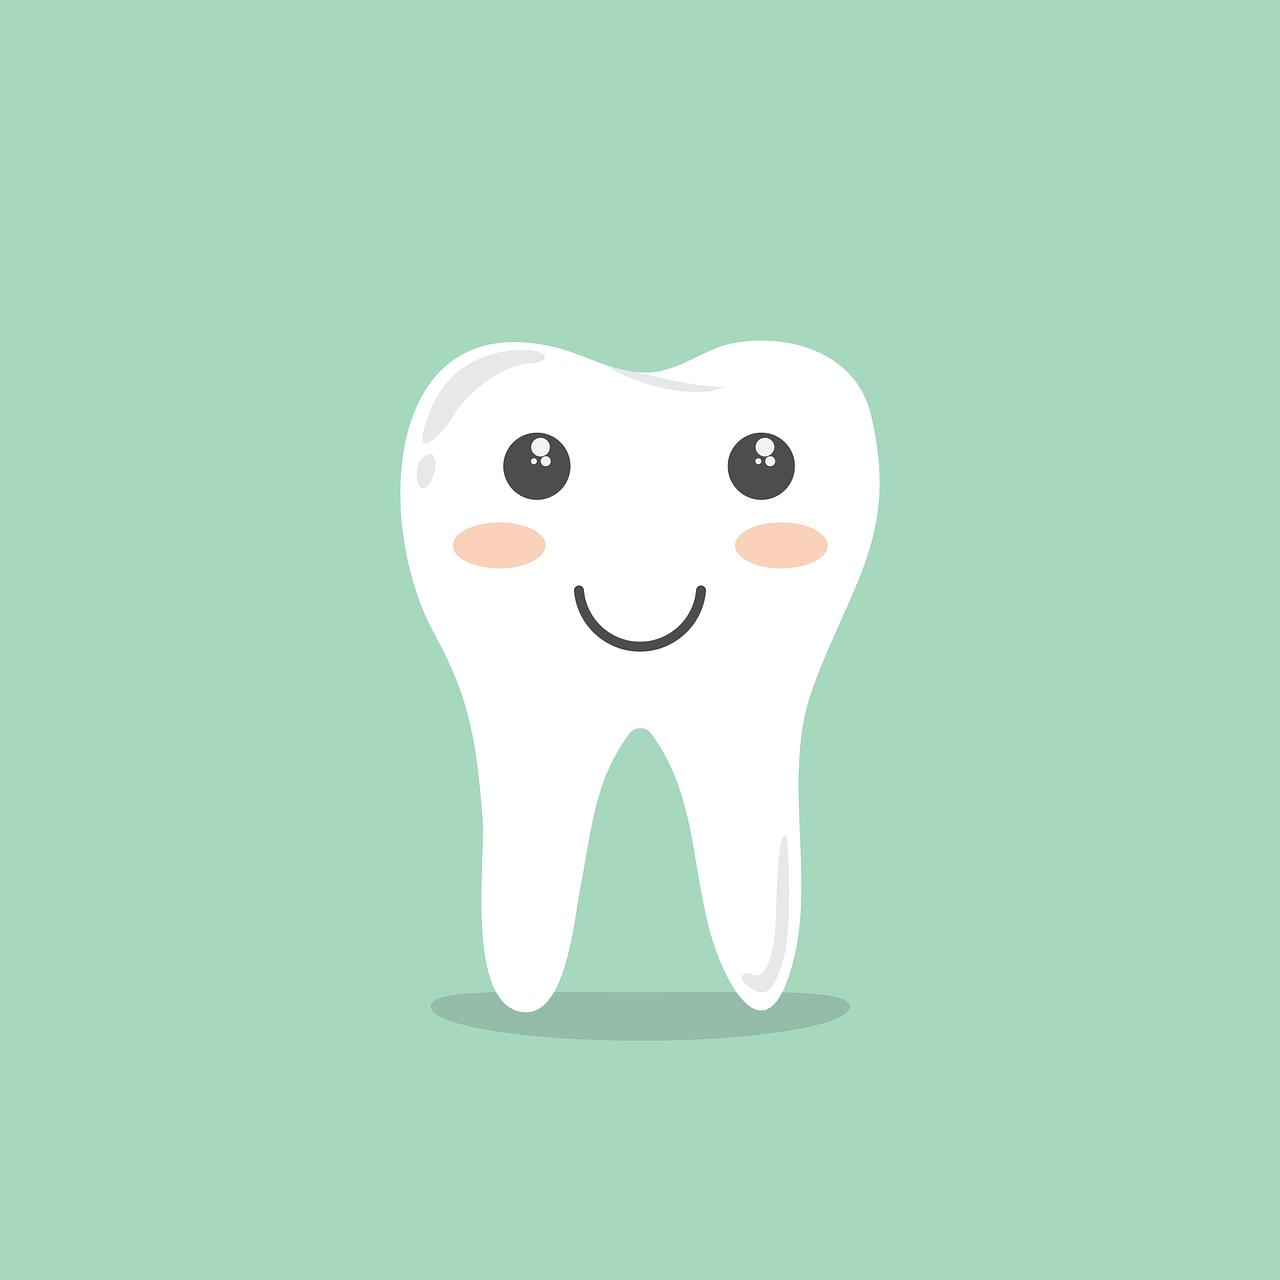 When Does a Tooth Require Root Canal Therapy?